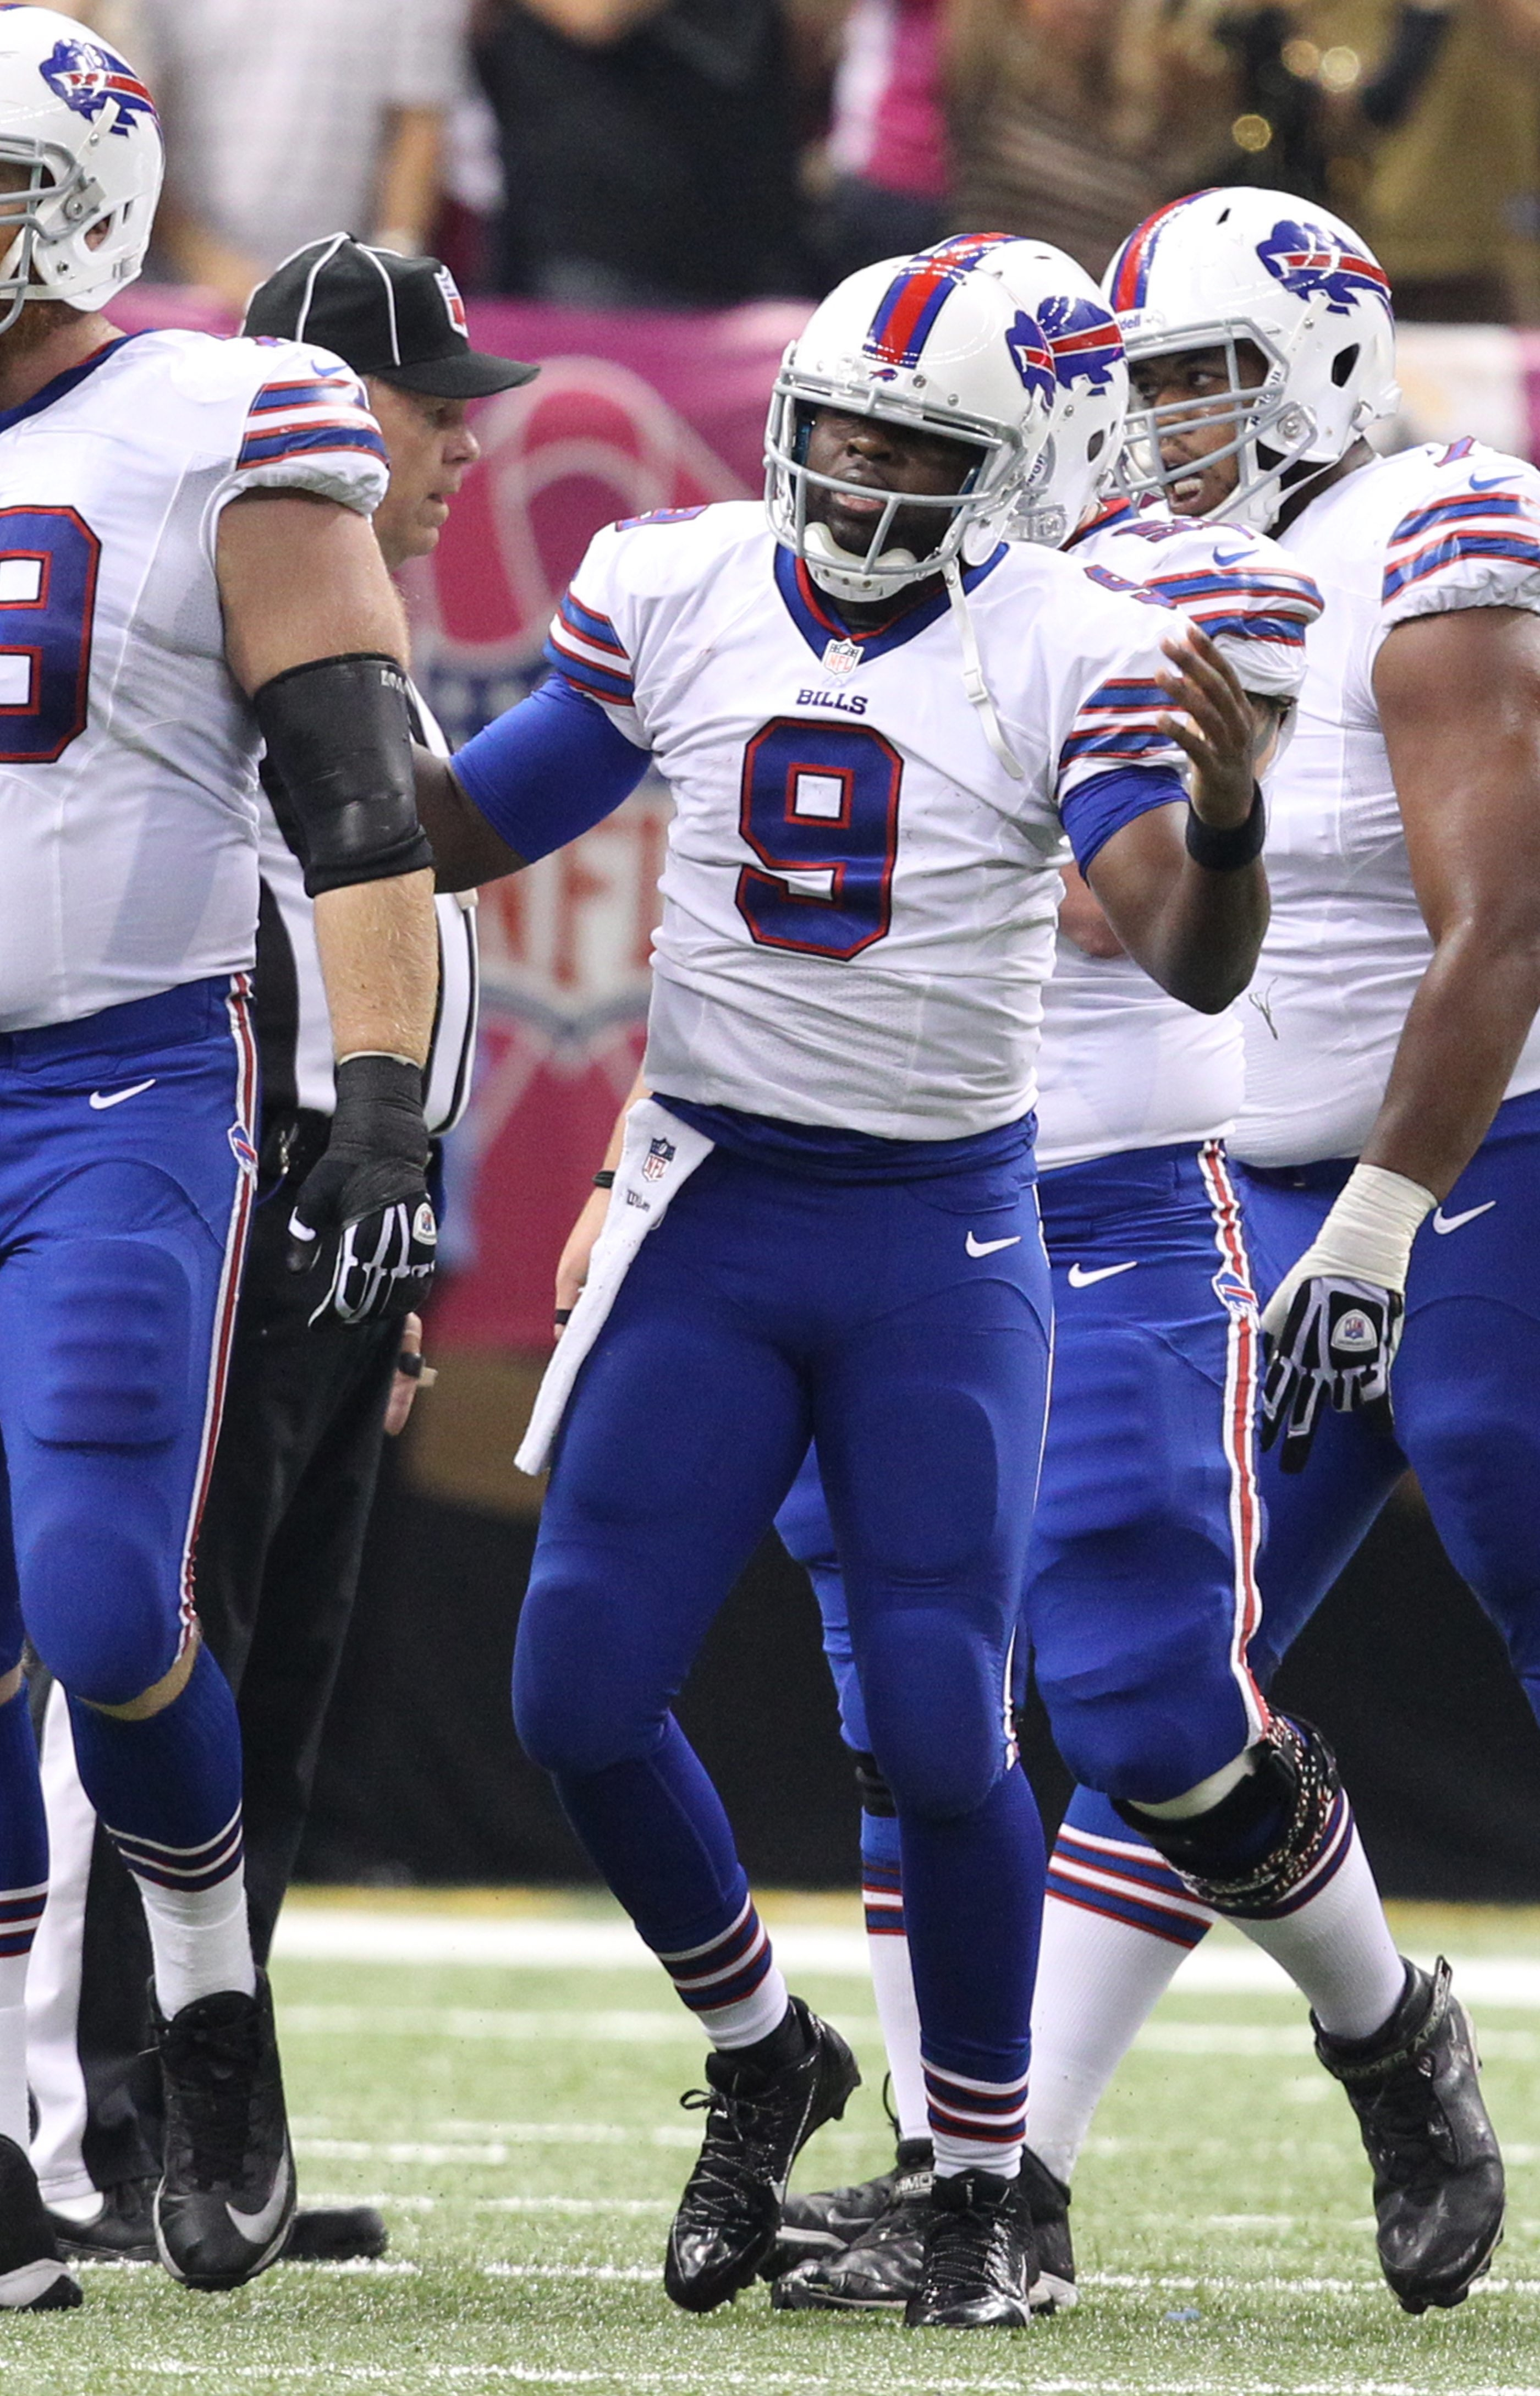 Buffalo Bills quarterback Thad Lewis (9) gestures to the sideline after fumbling in the first quarter. He fumbled three times against the Saints, losing two.  (James P. McCoy/ Buffalo News)